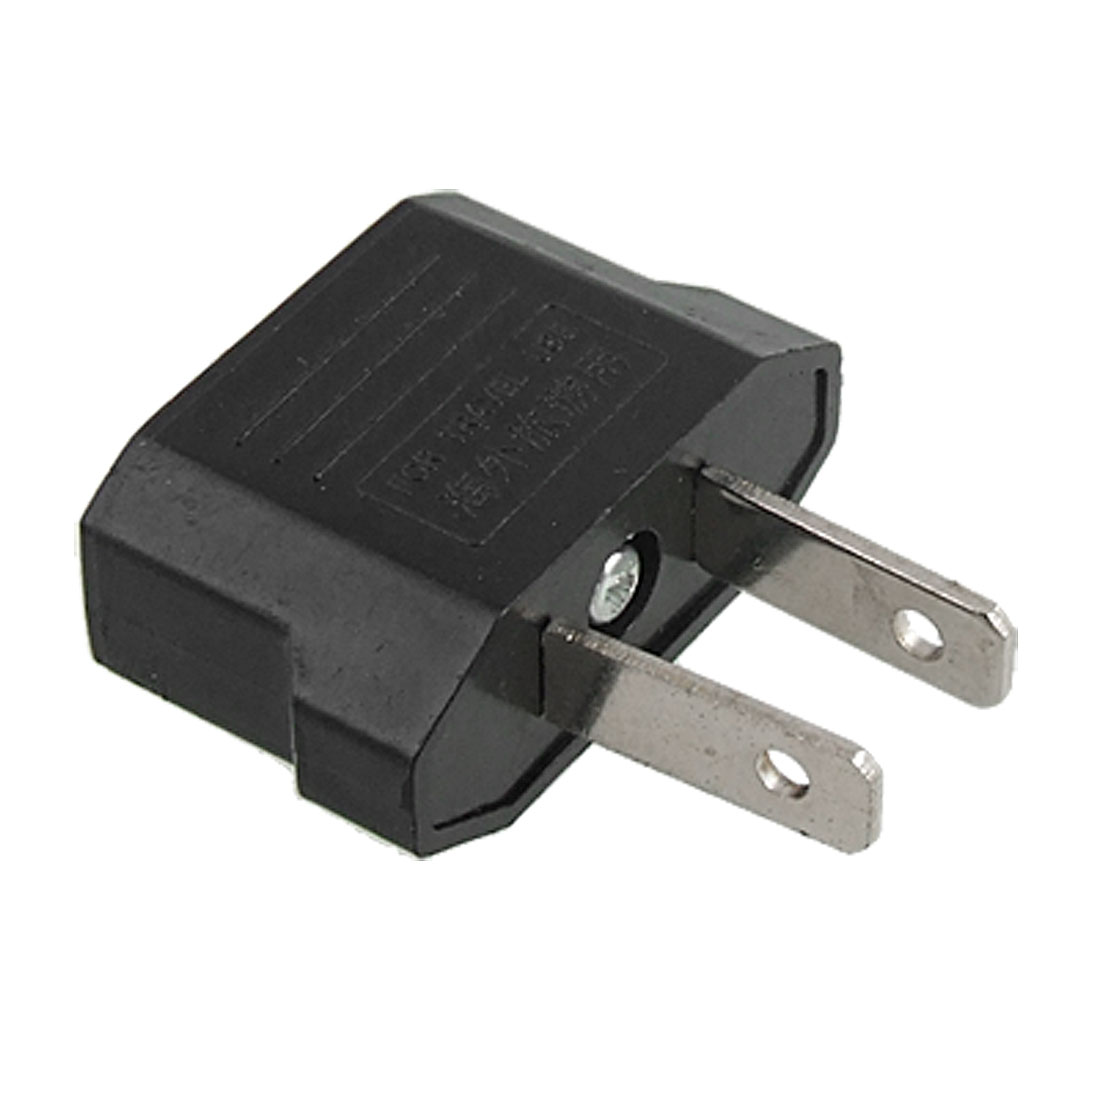 US Plug to US EU Socket Travel Power Adapter Converter AC 2.5V-250V